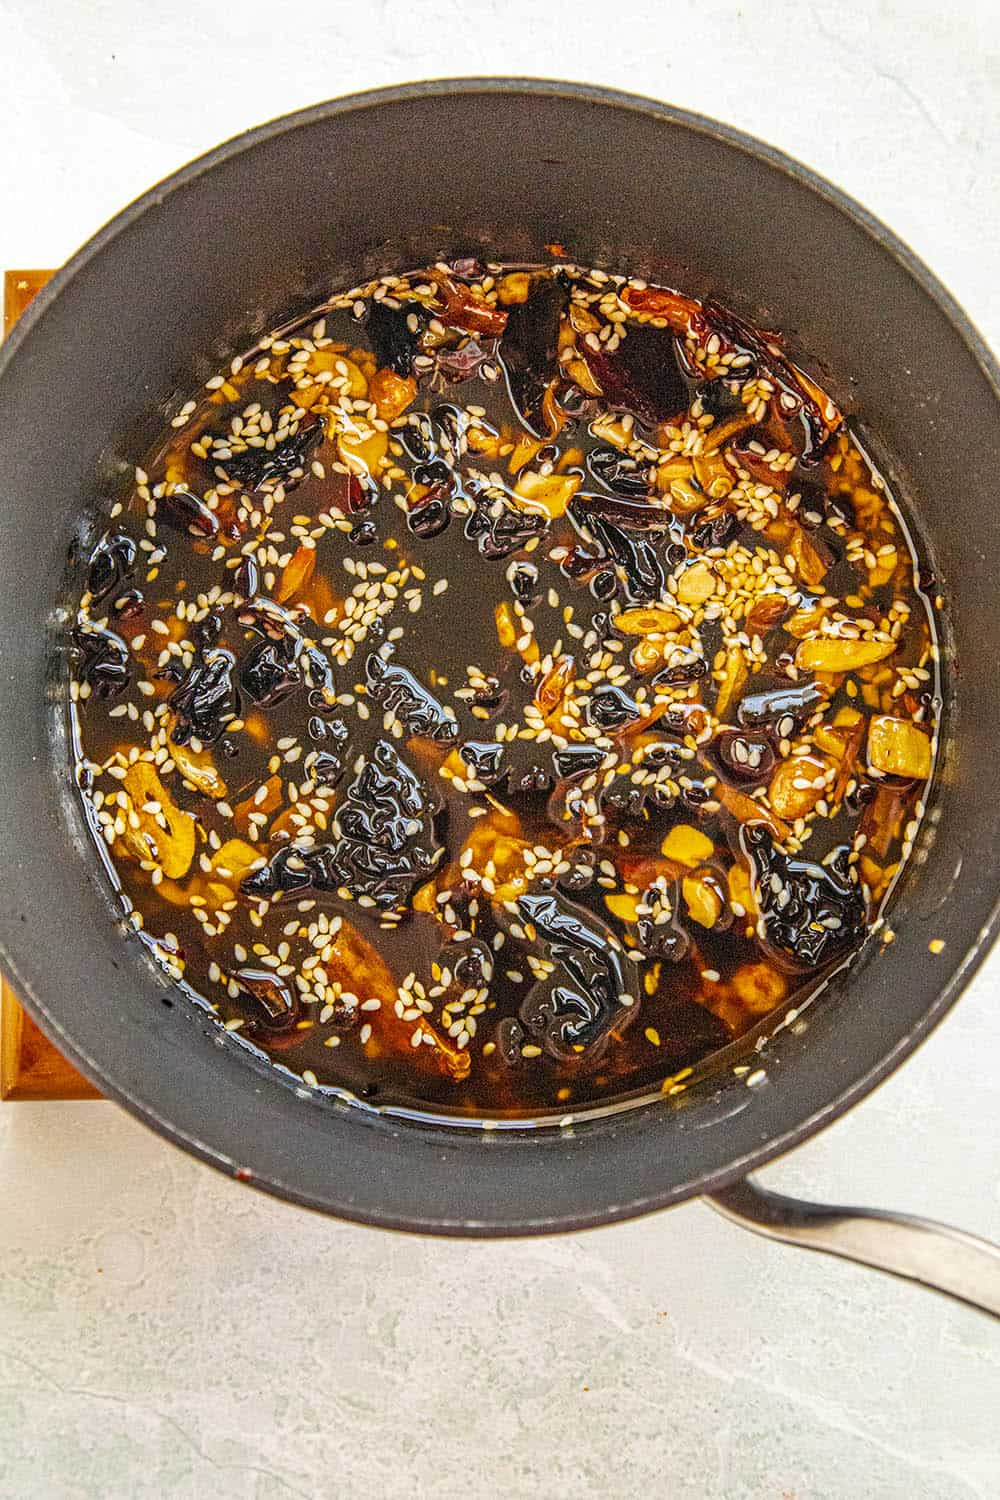 Cooking down the chili peppers in the hot oil with the sesame seeds, nuts and garlic